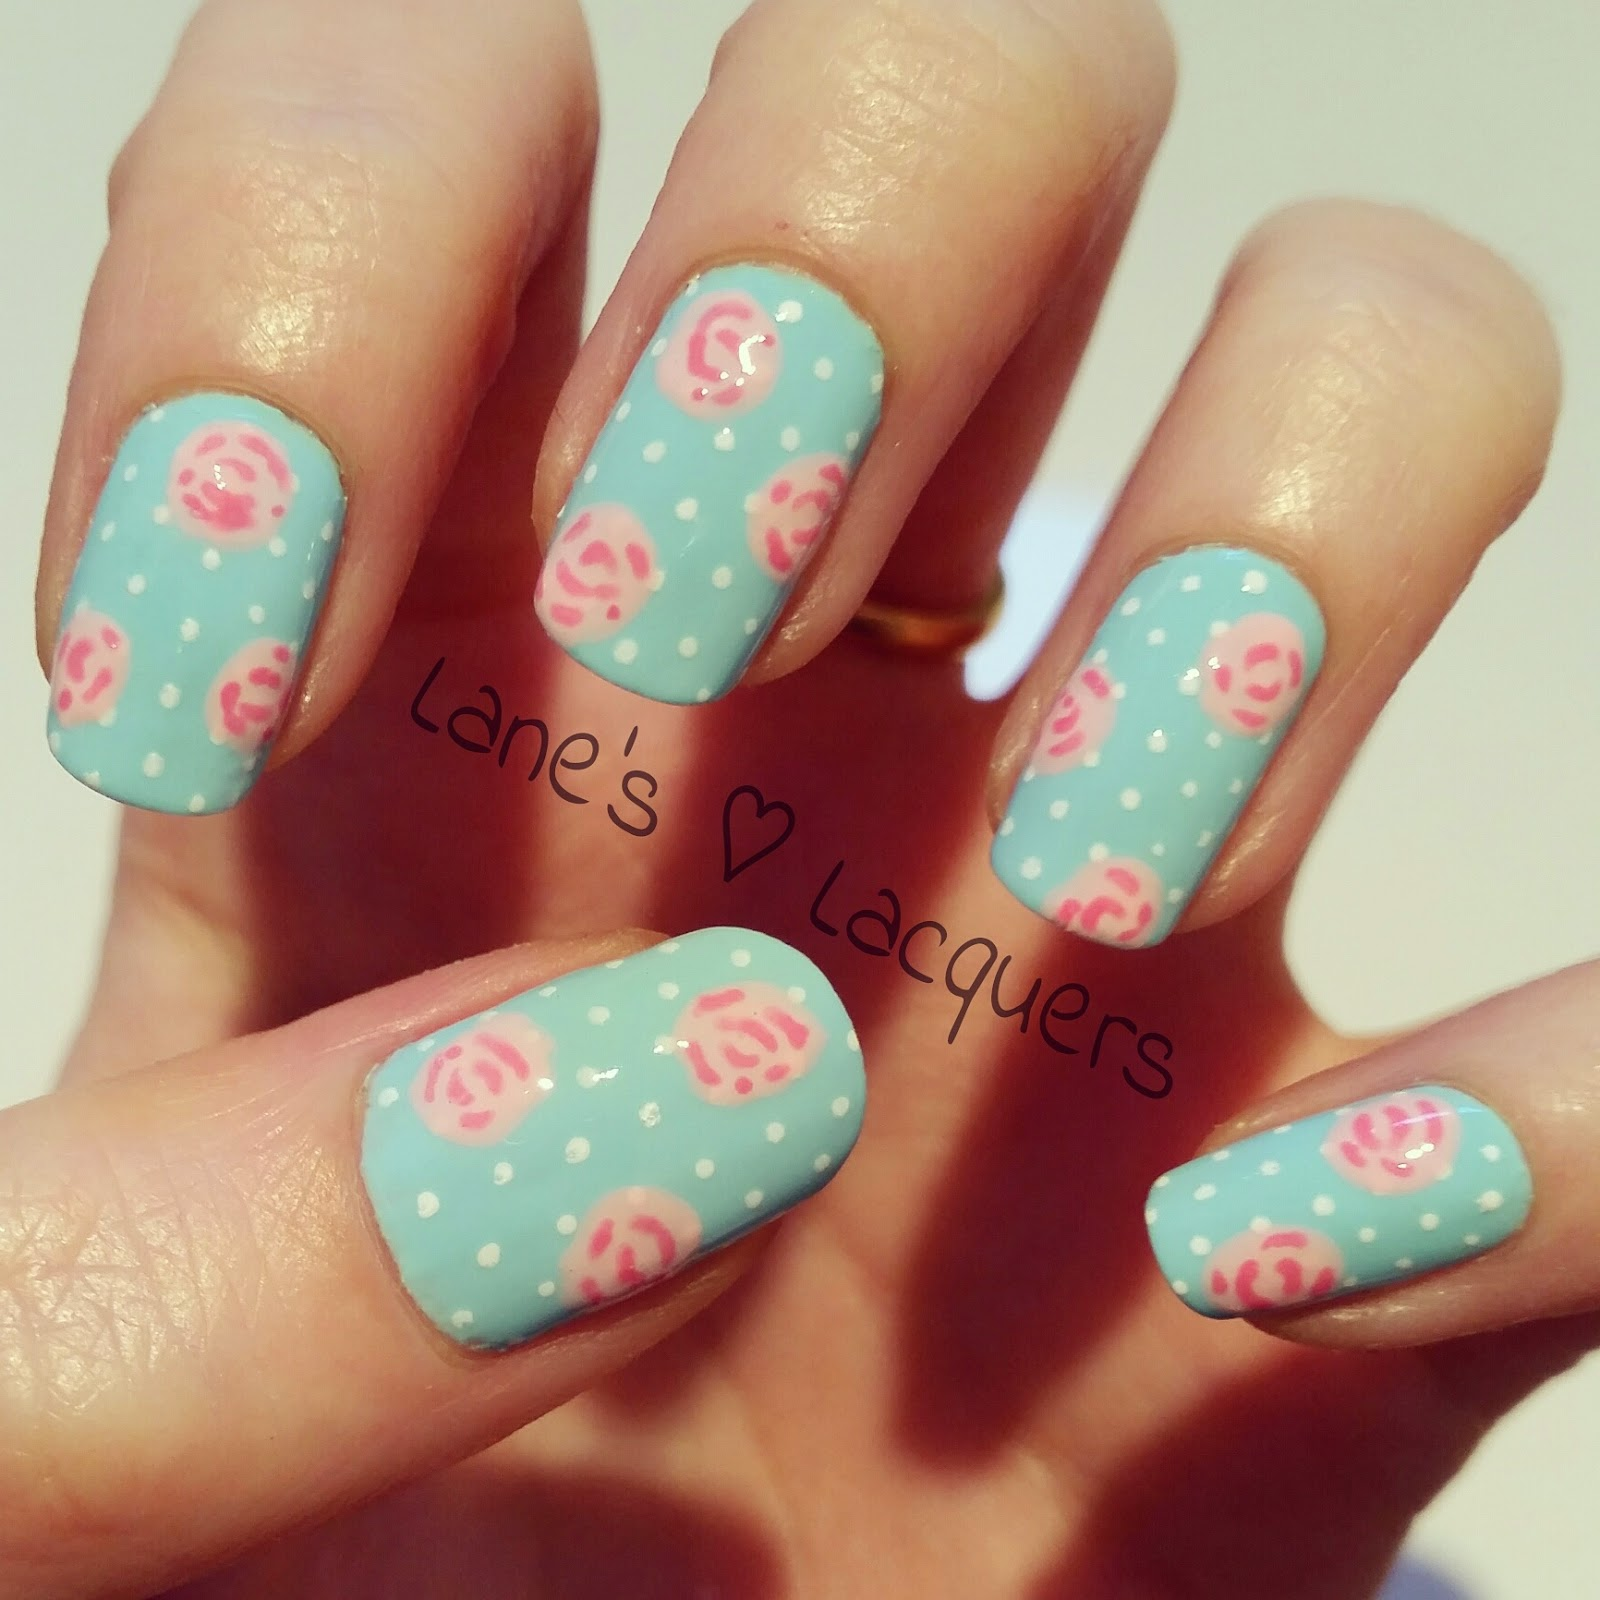 Nail Arts By Rozemist Cath Kidston Vintage Inspired: Lane's Lacquers: Mani Swap: My Mint Nails